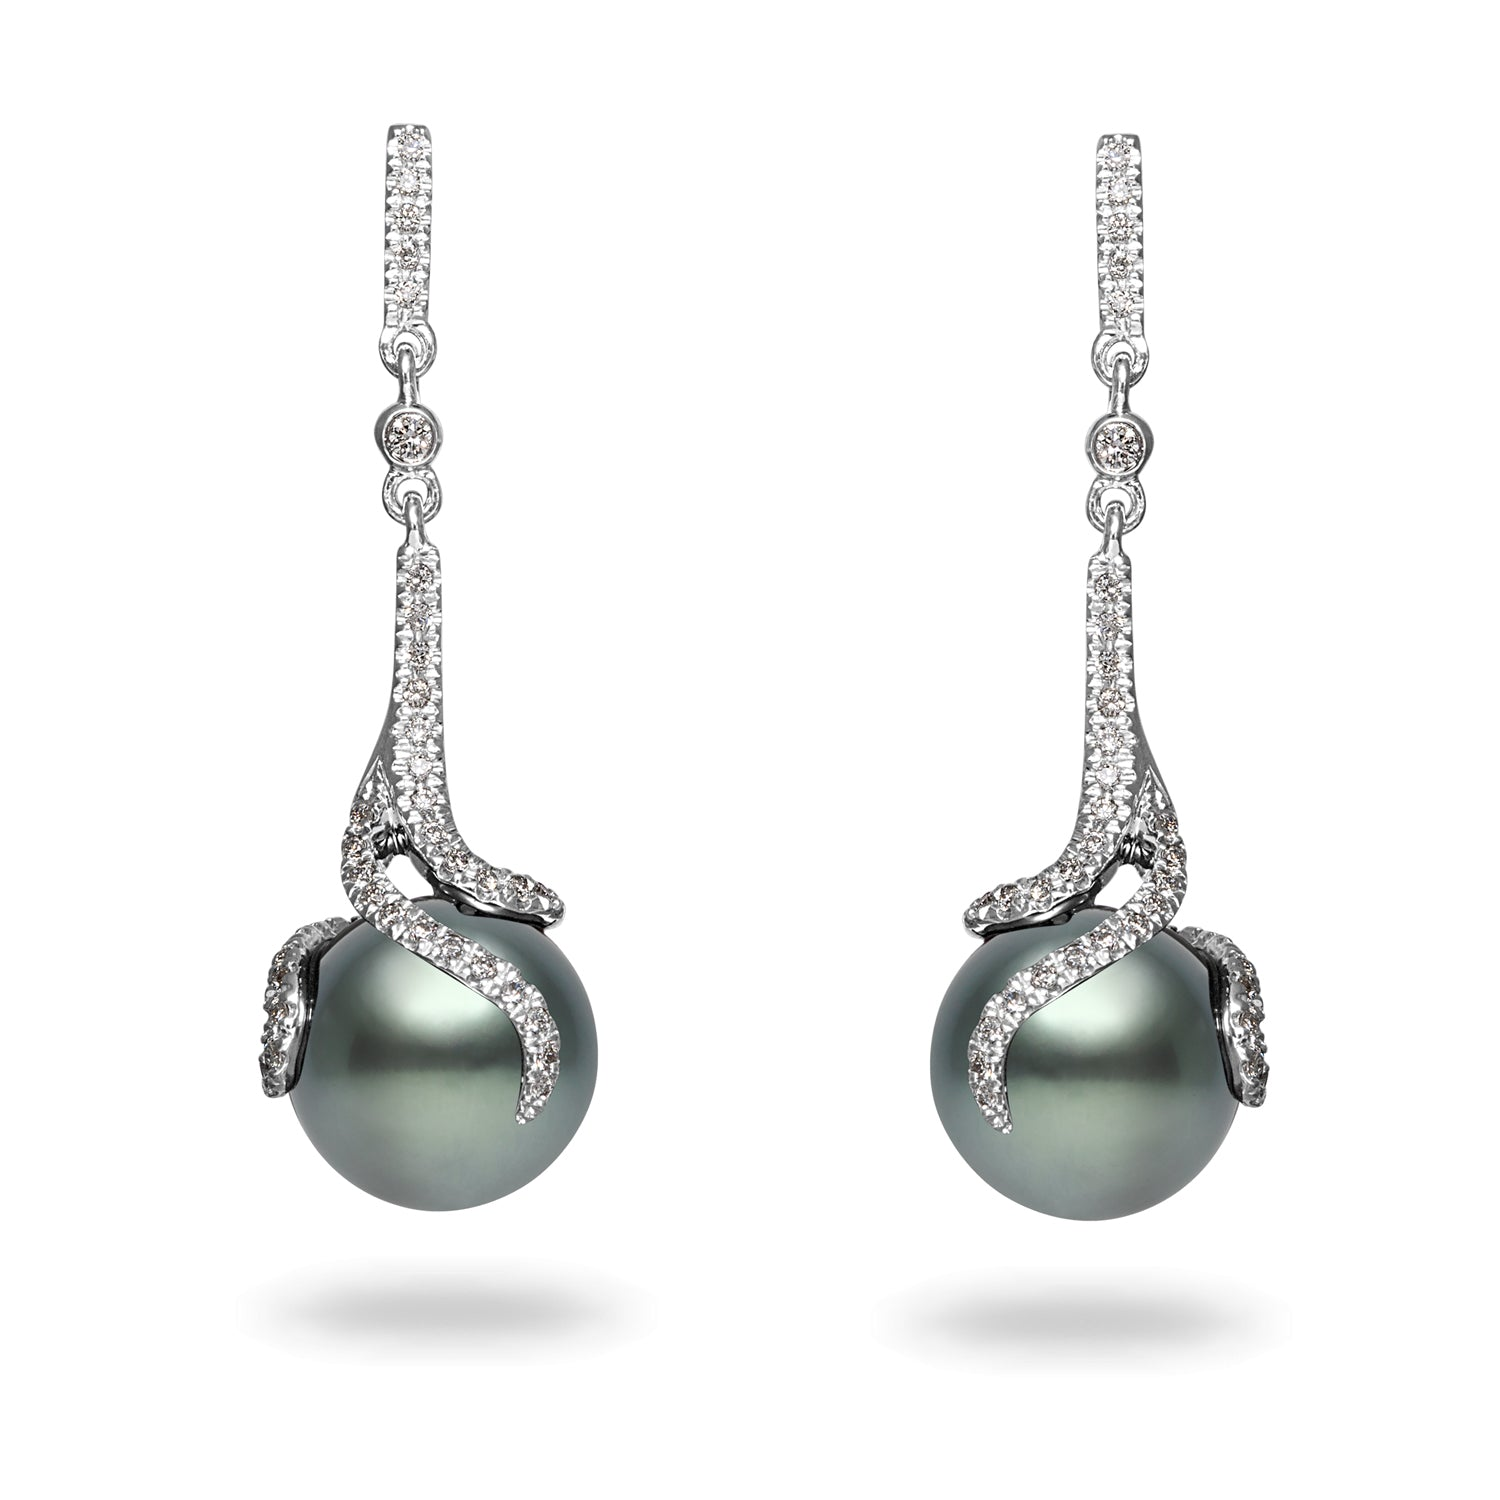 Oscar Collection 14k 10-11mm Tahitian Cultured Pearl and Diamond Earrings